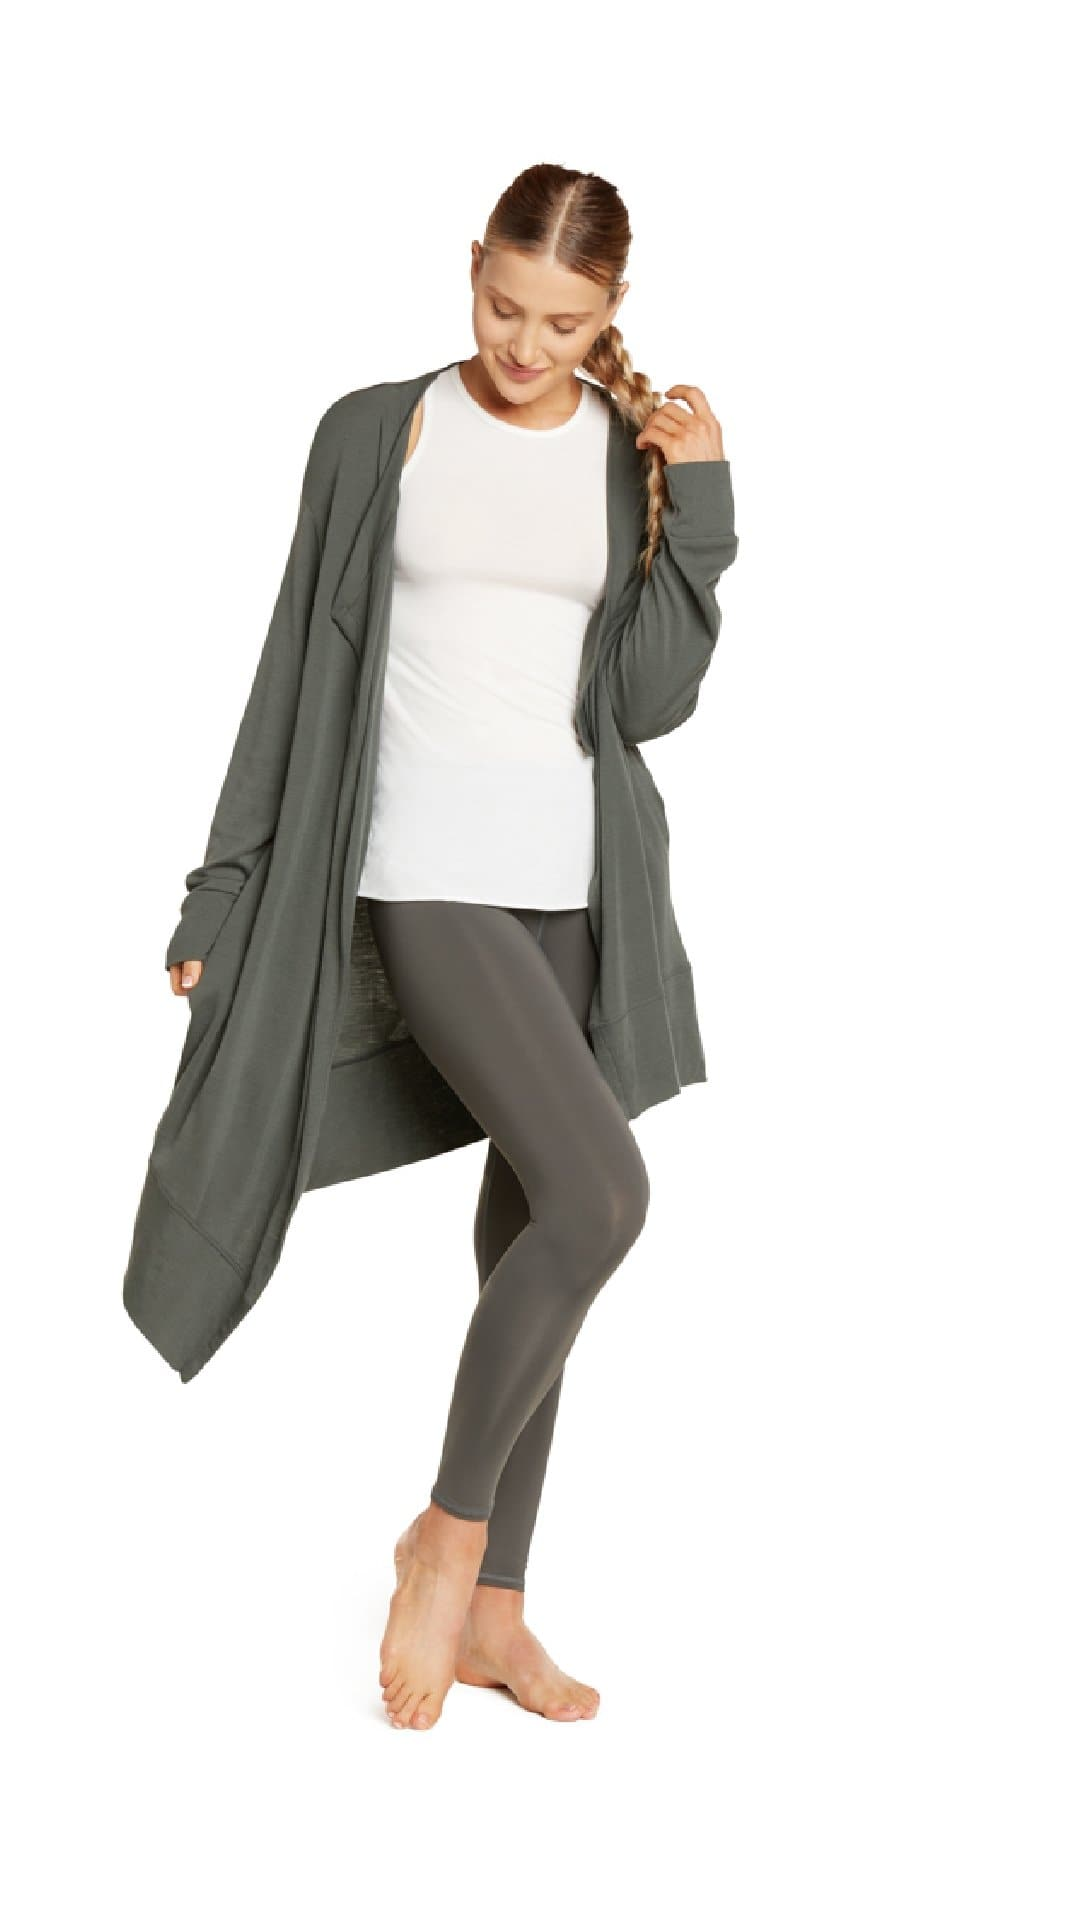 Sweater: Asymmetrical Wrap - SQN Sport